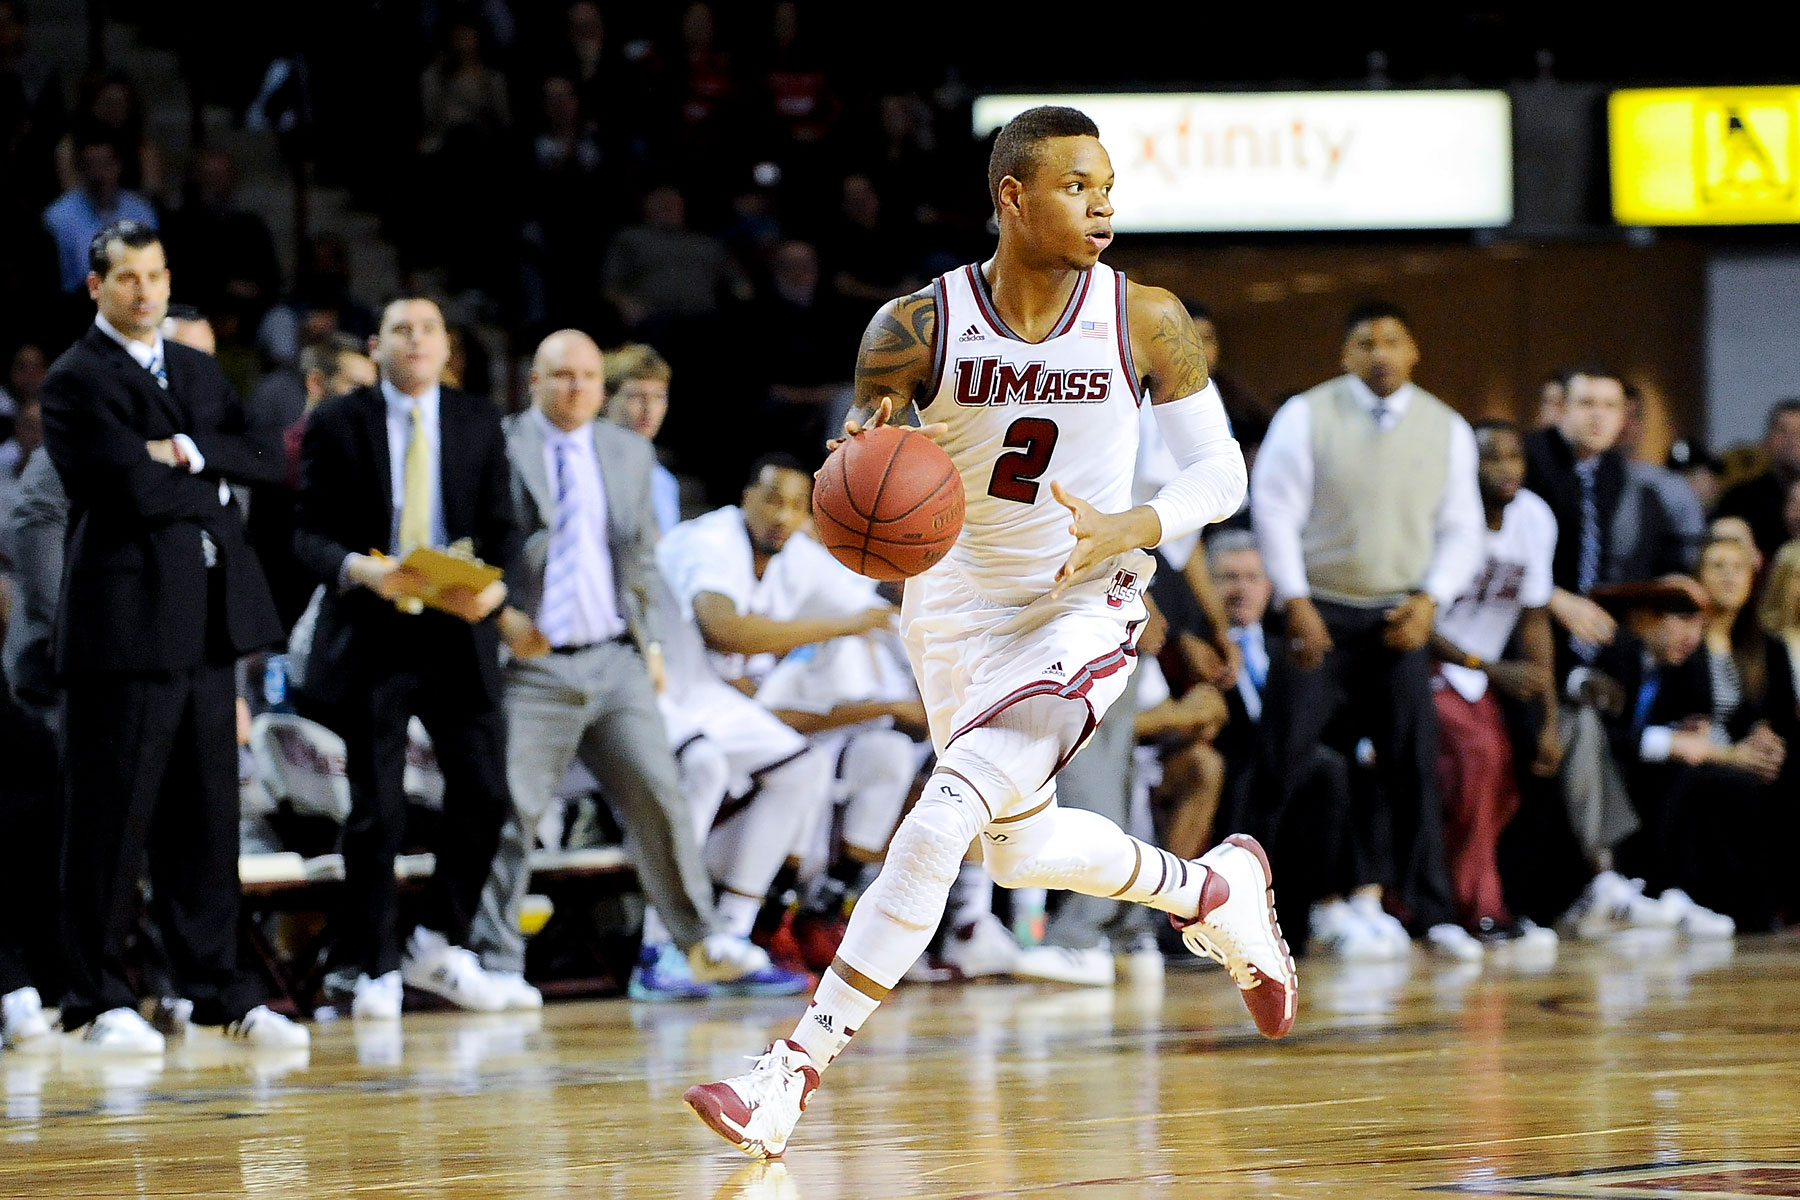 UMass guard Derrick Gordon dribbles the ball during a game against the Fordham Rams at the Mullin Center in Amherst, Mass., Jan. 26, 2014.